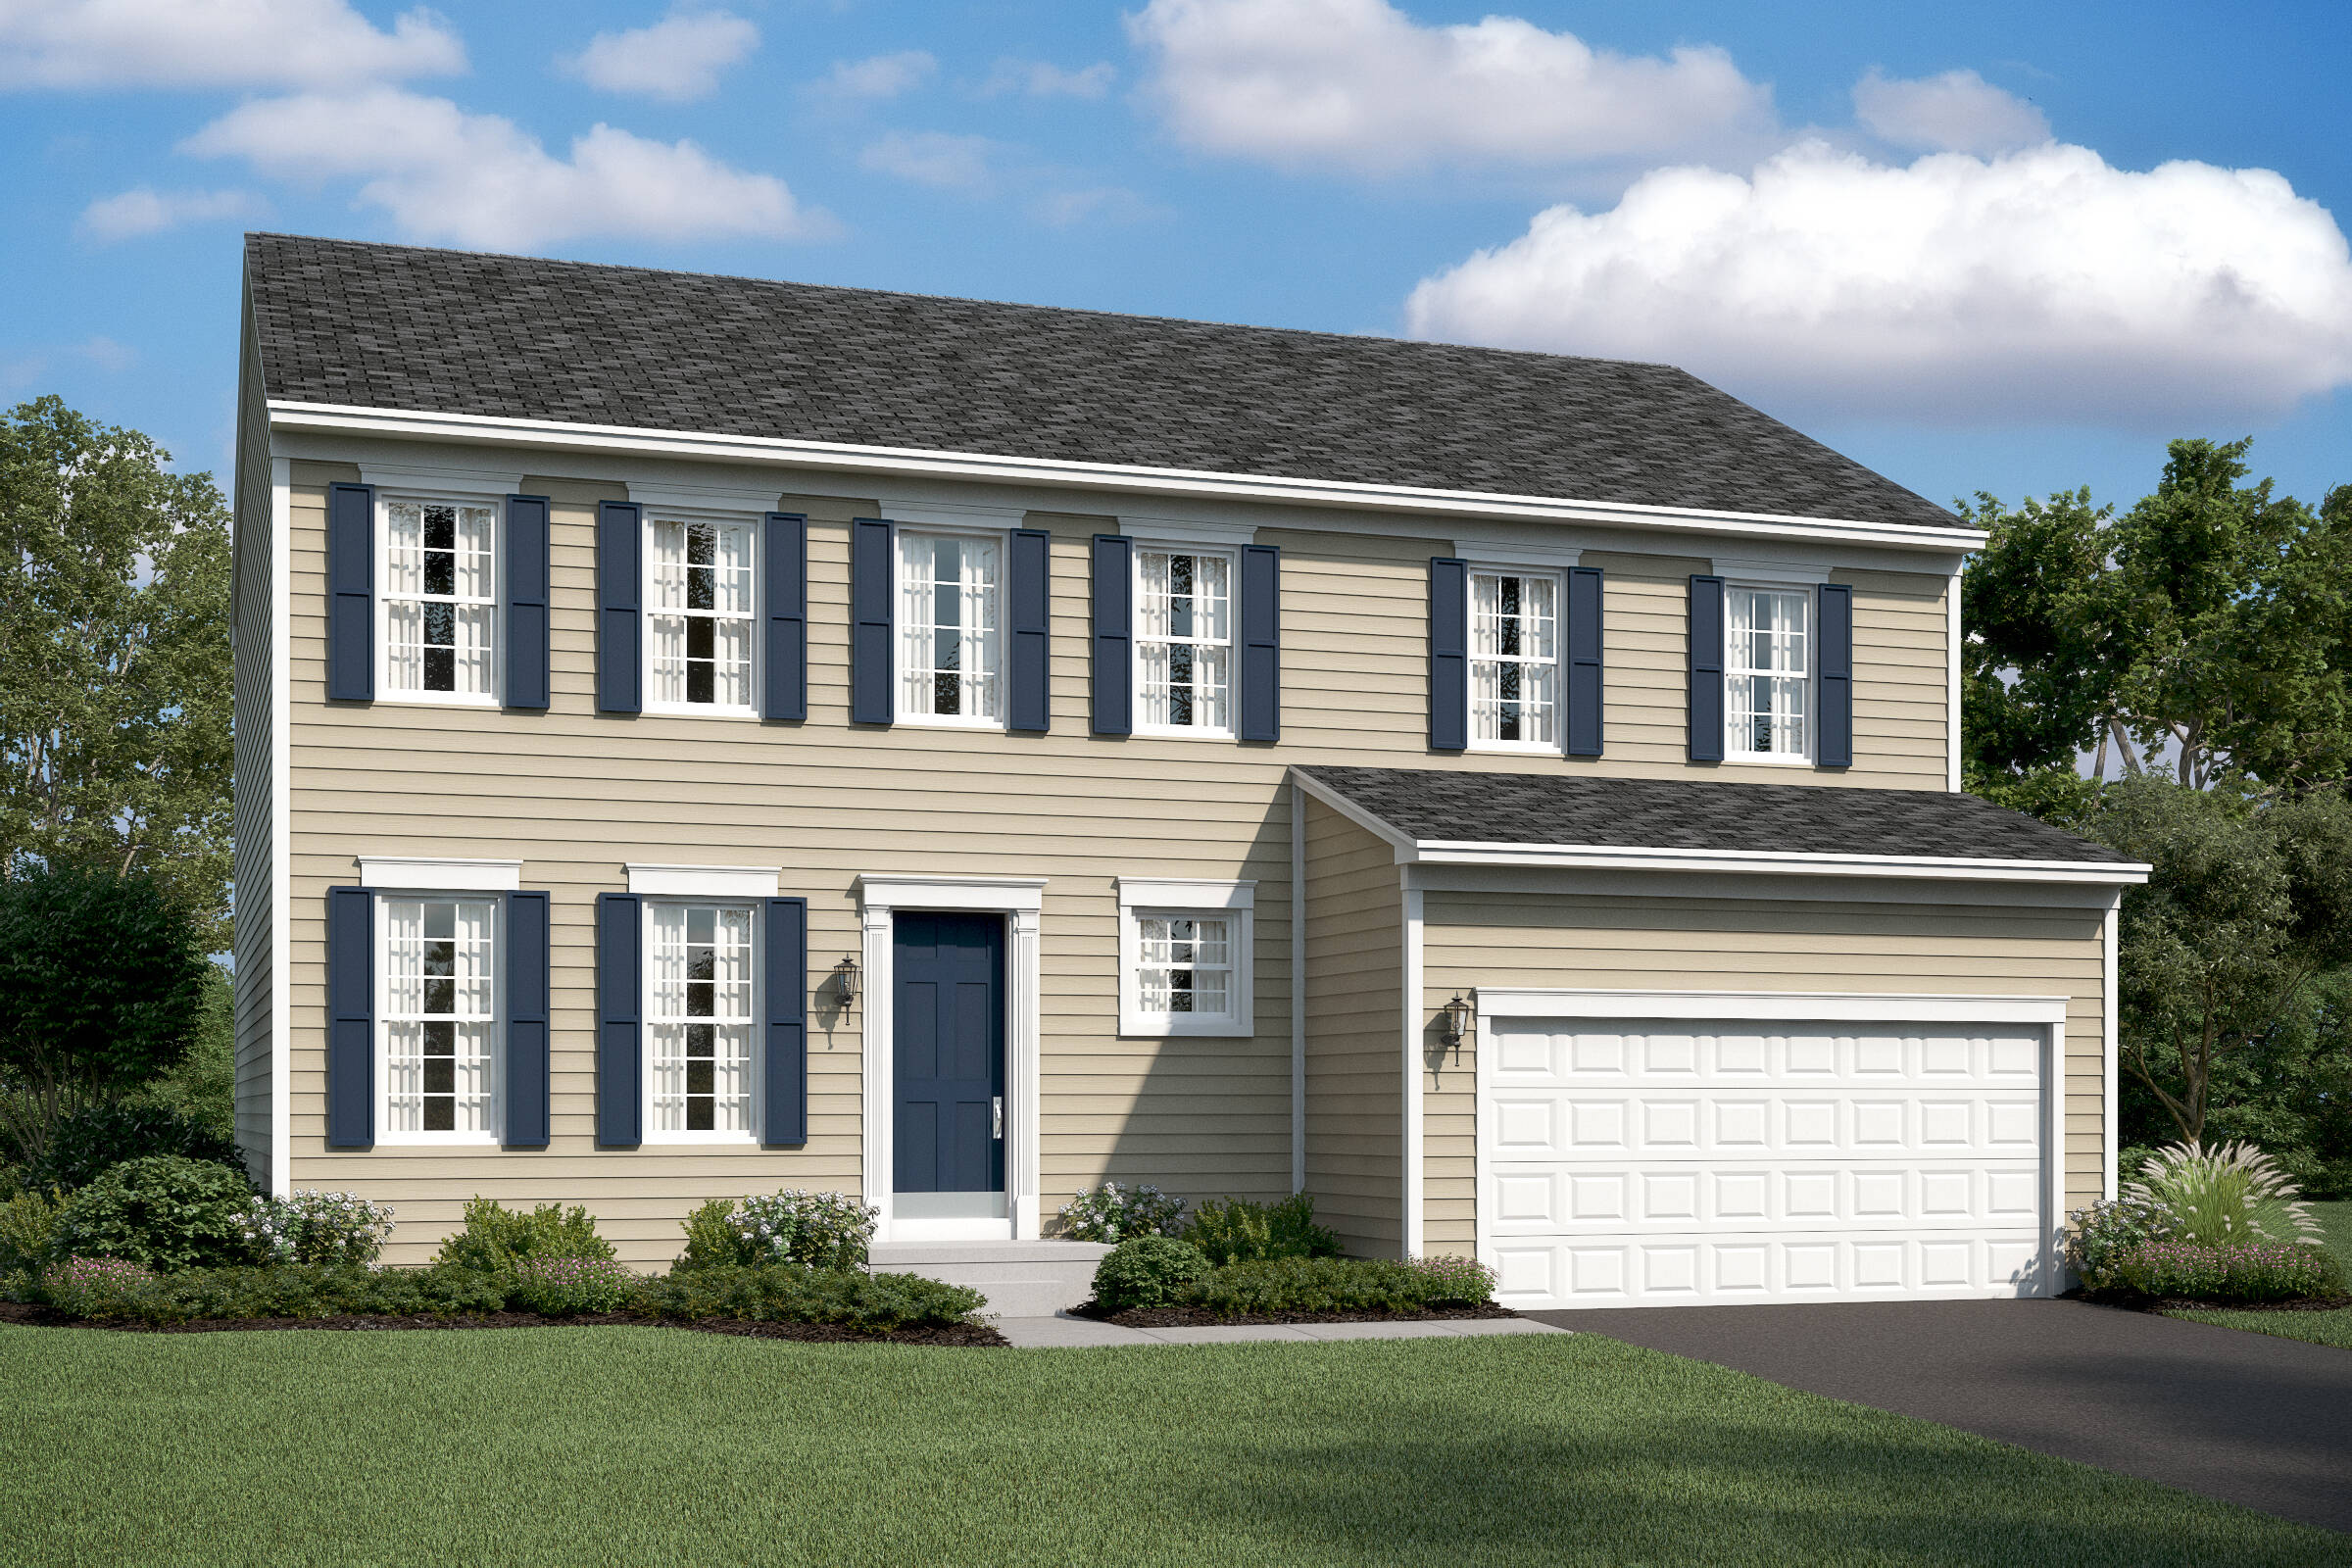 peach tree II as new homes at wellspring in virginia